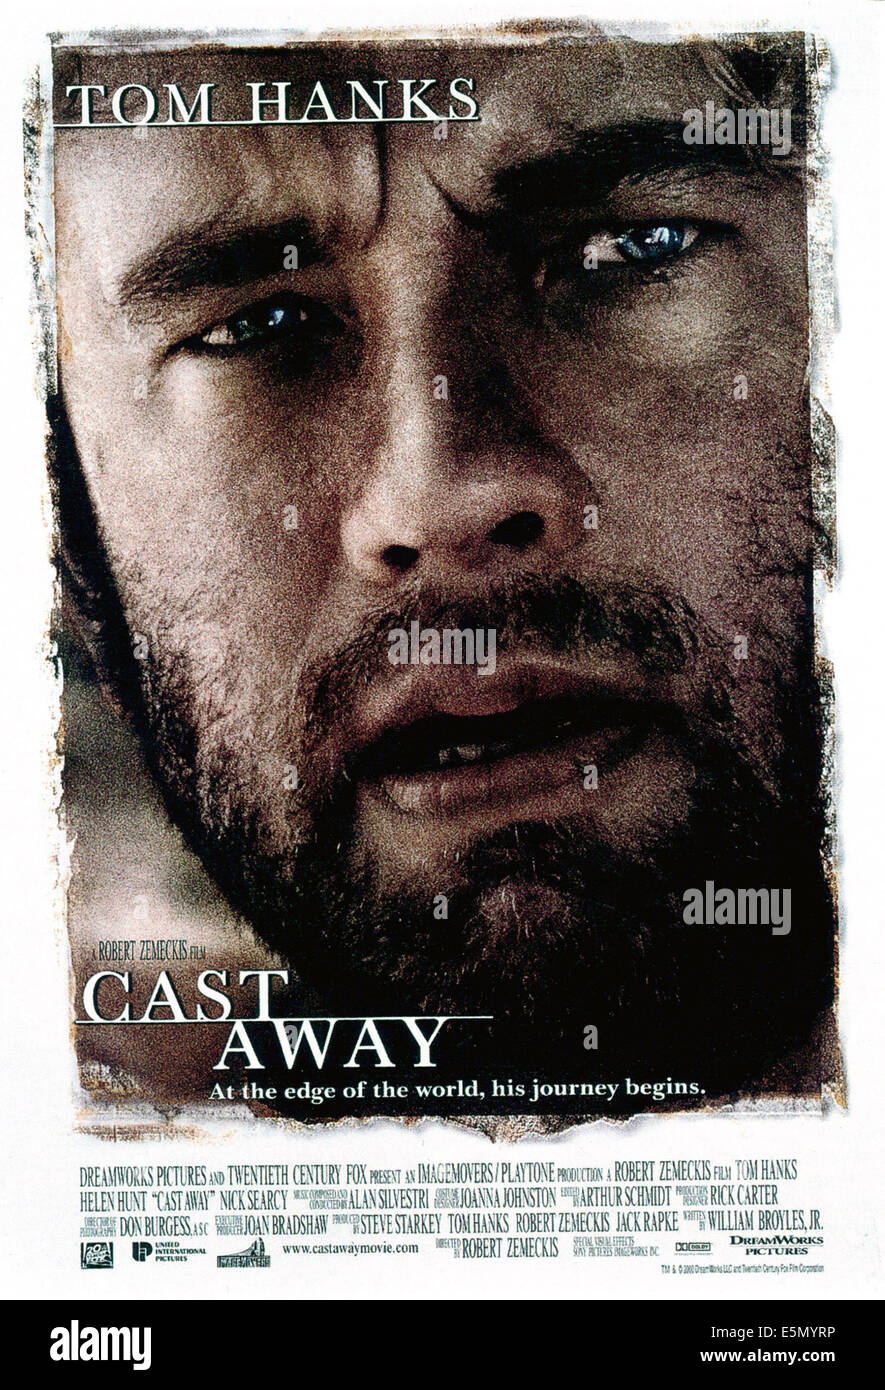 CAST AWAY, Tom Hanks, 2000, TM and Copyright ©20th Century Fox Film Corp. All rights reserved./courtesy Everett - Stock Image